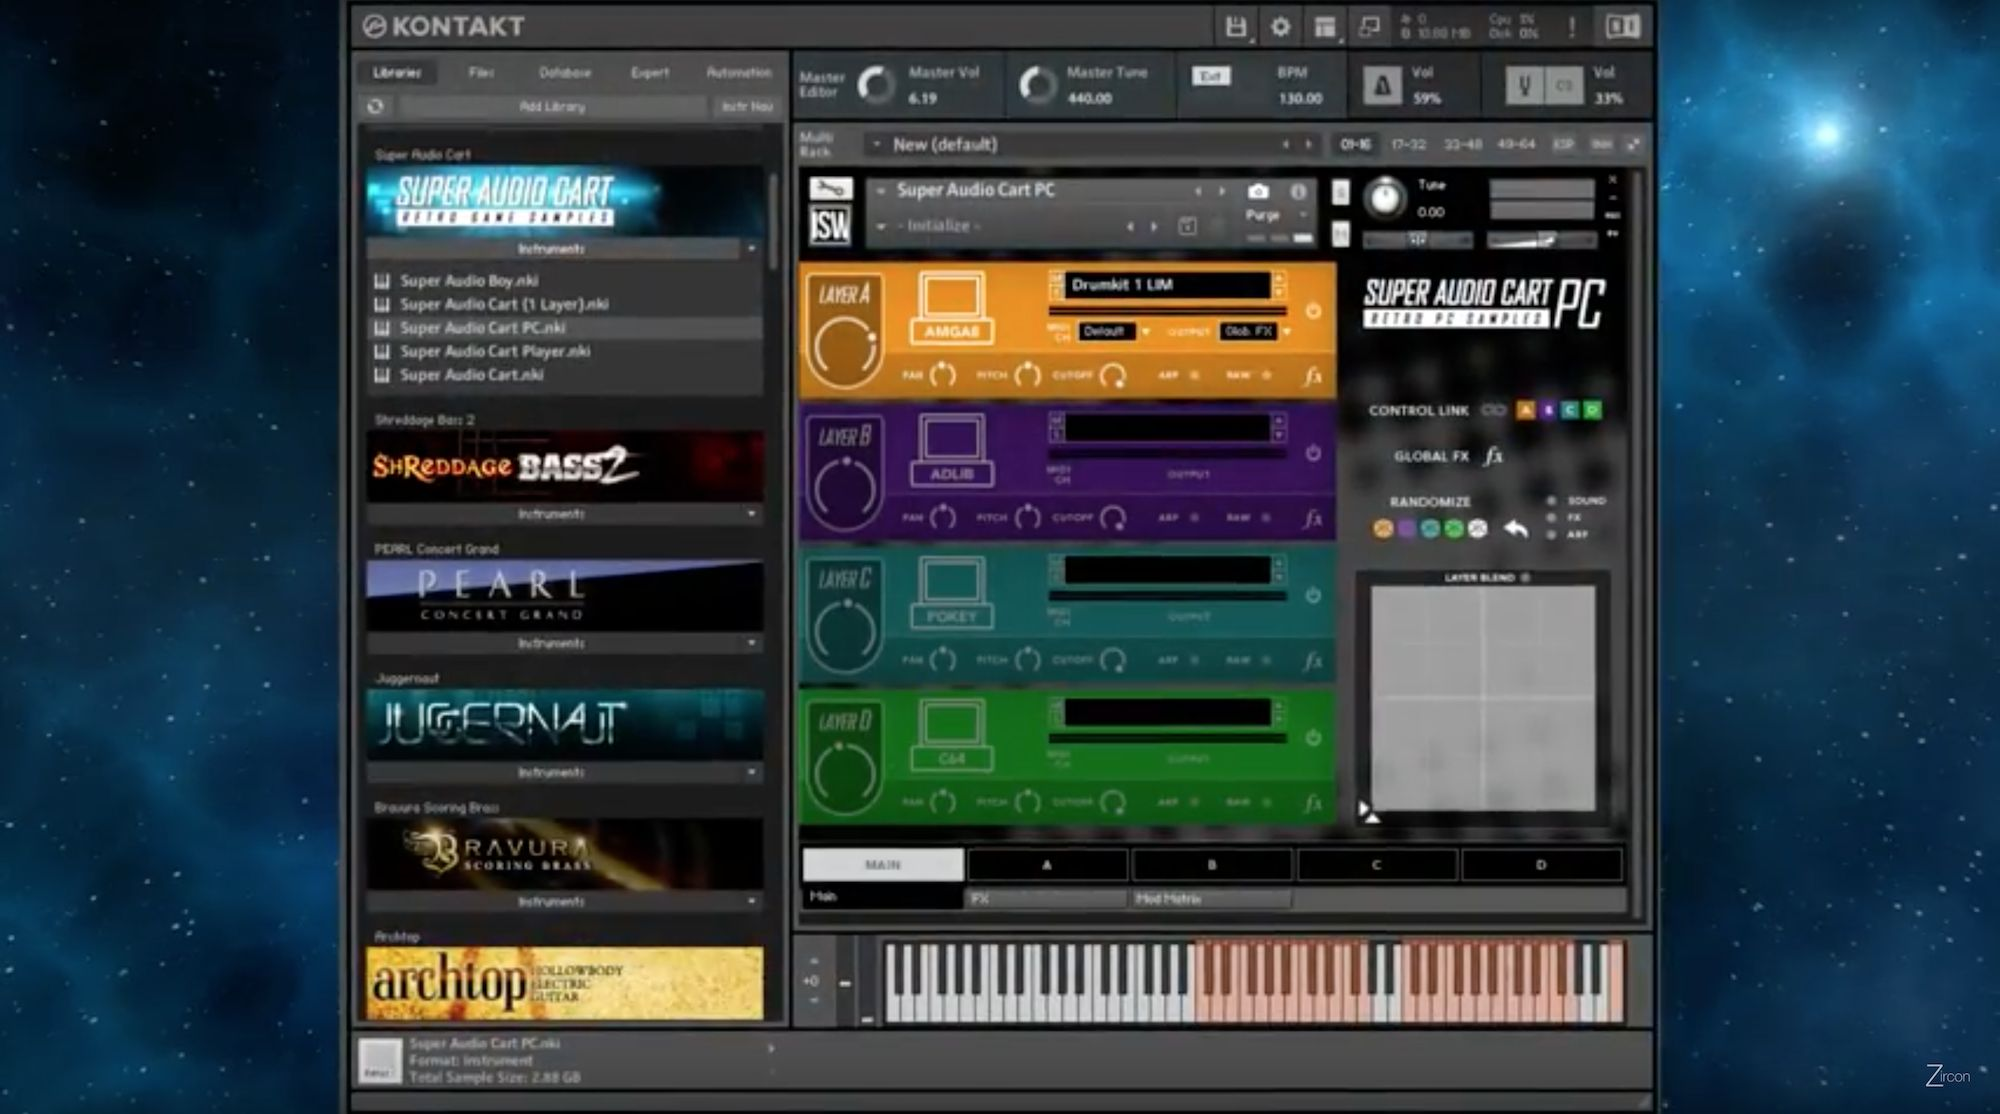 Super Audio Cart PC in Kontakt